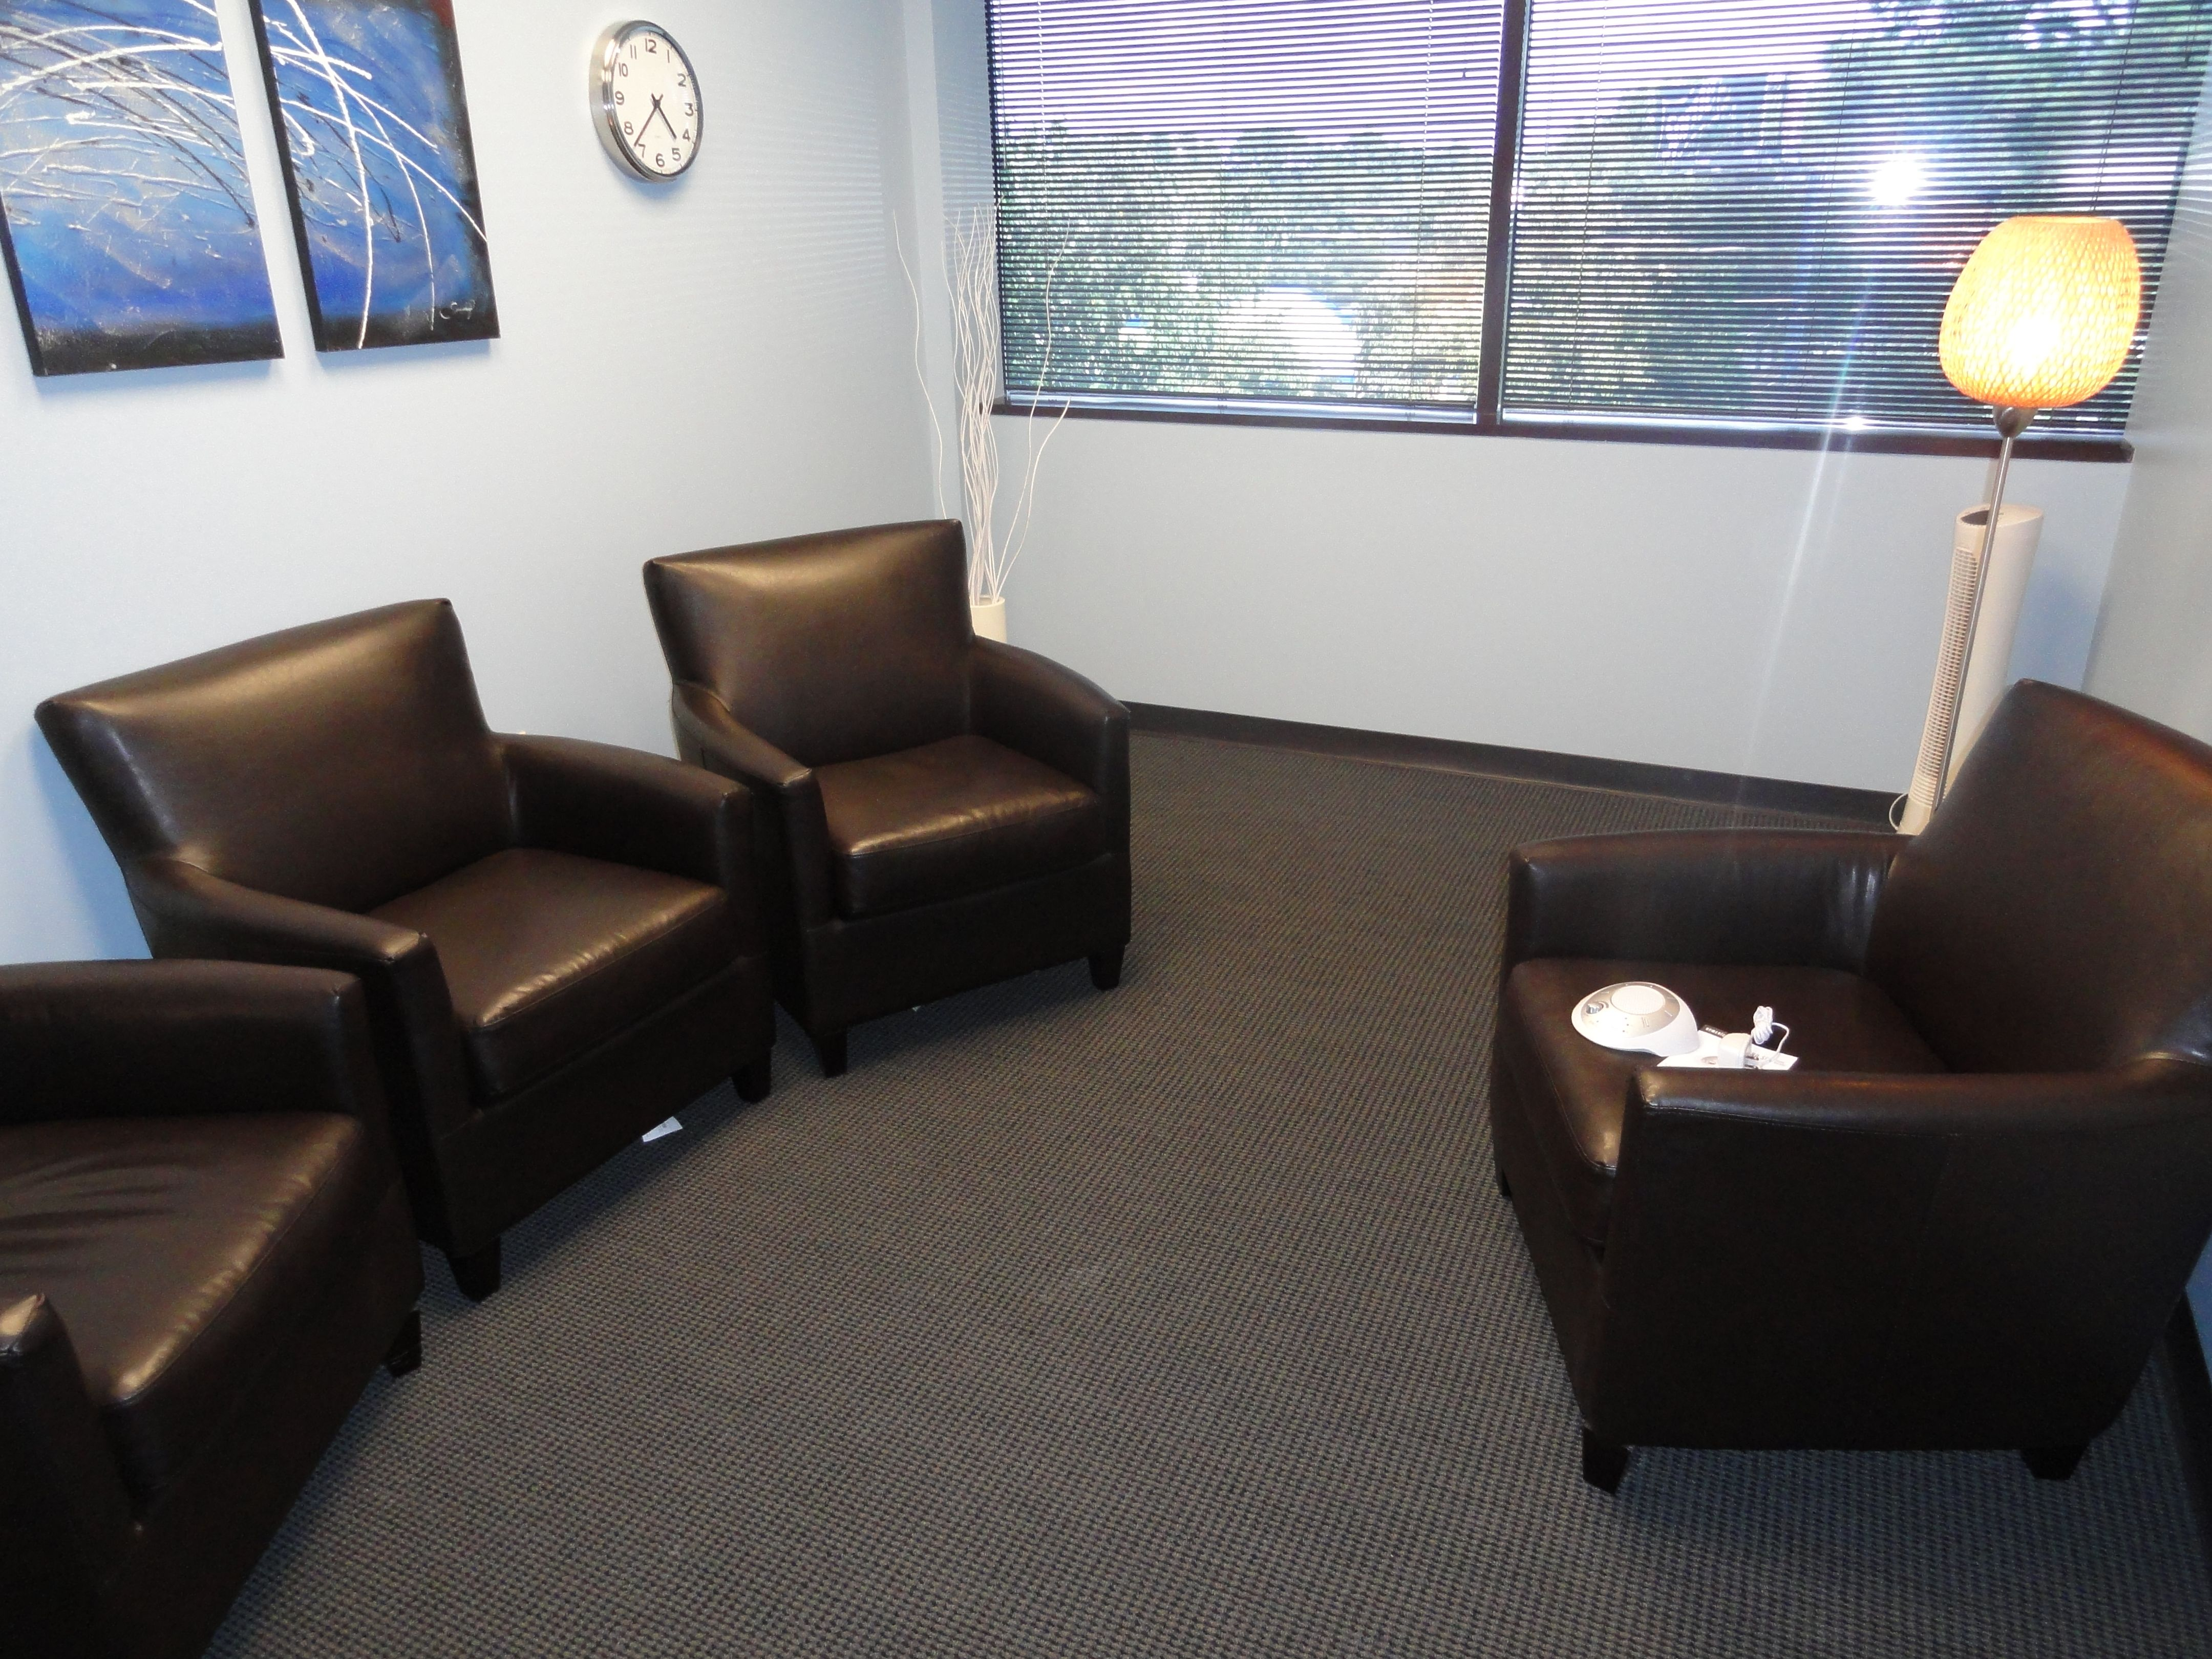 Gentil Counseling Office 2 Counseling Office, Therapy, Chair, House Design, Room,  Office